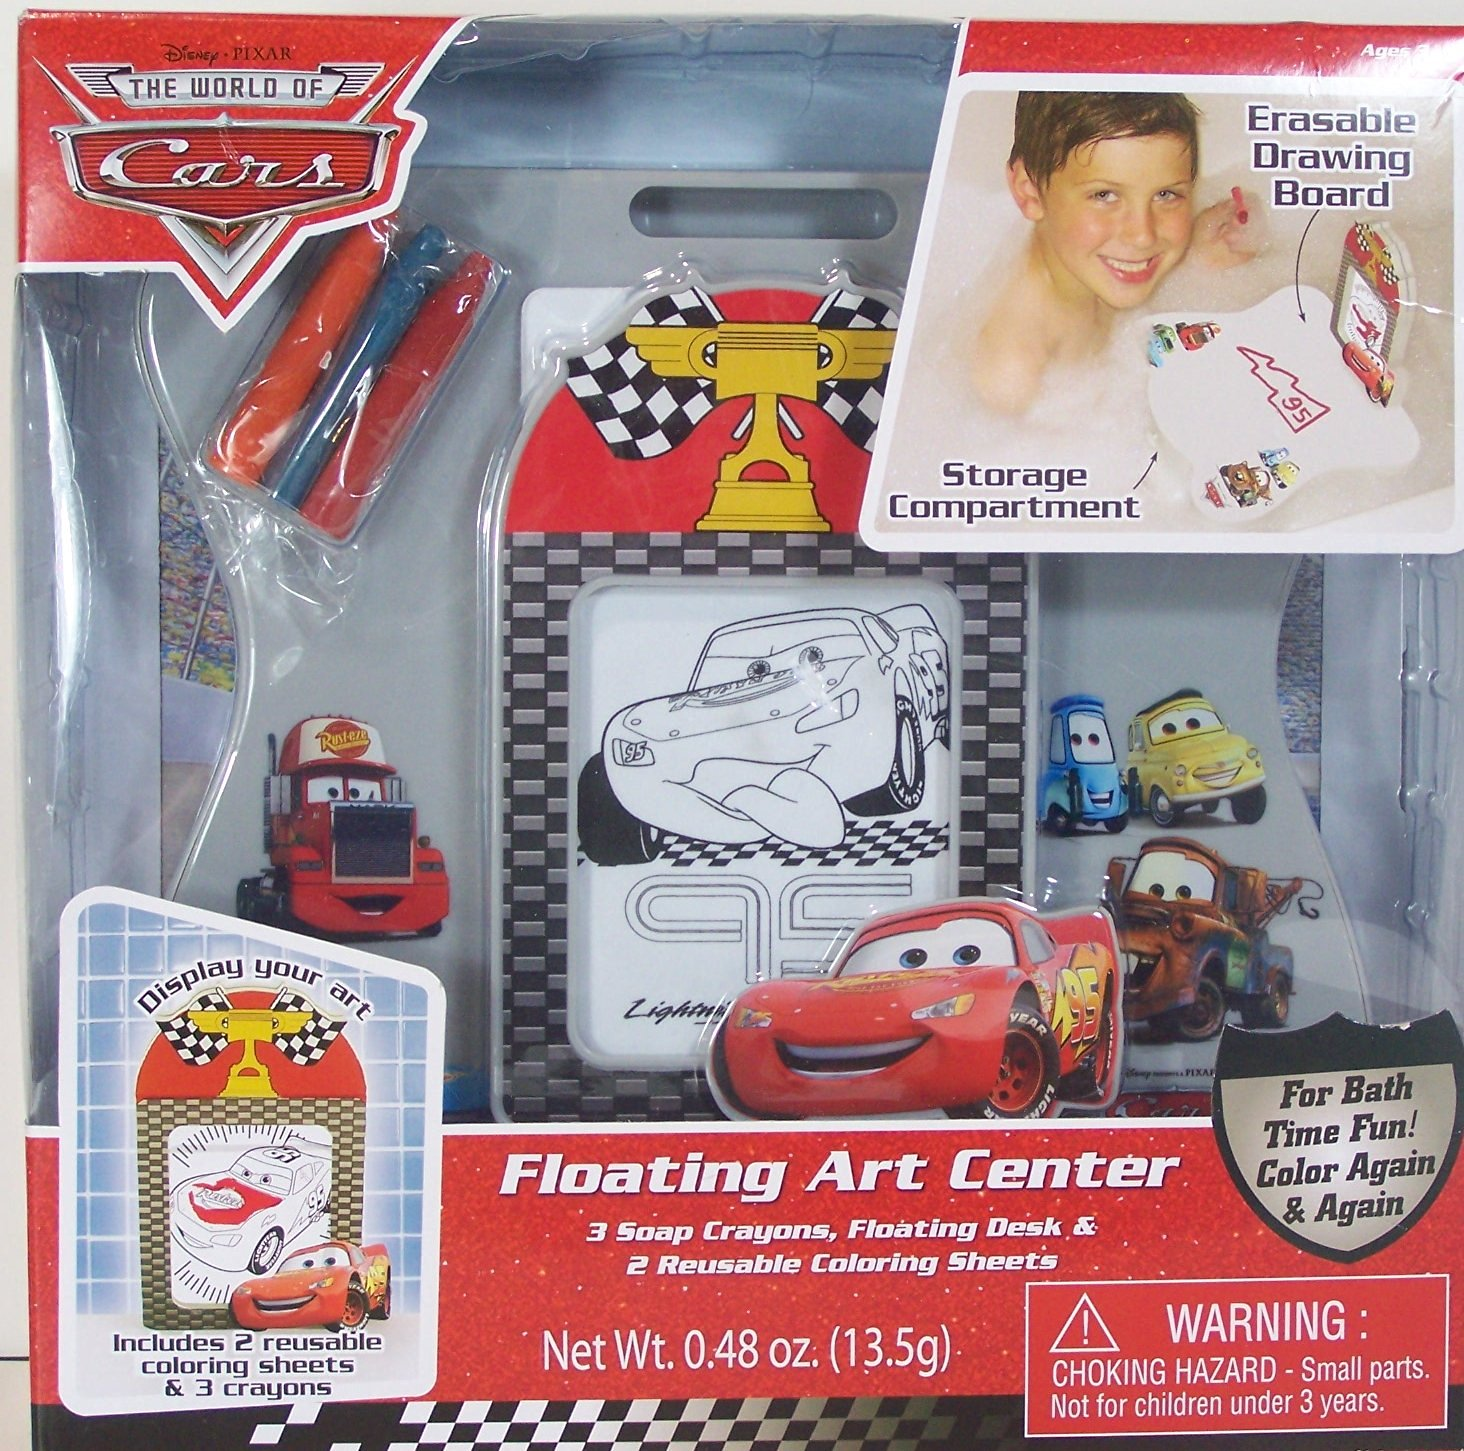 Disney Cars Bath Tub Floating Art Center (3 Crayons, Floating Desk, 2 Reusable Coloring Sheets) by MZB